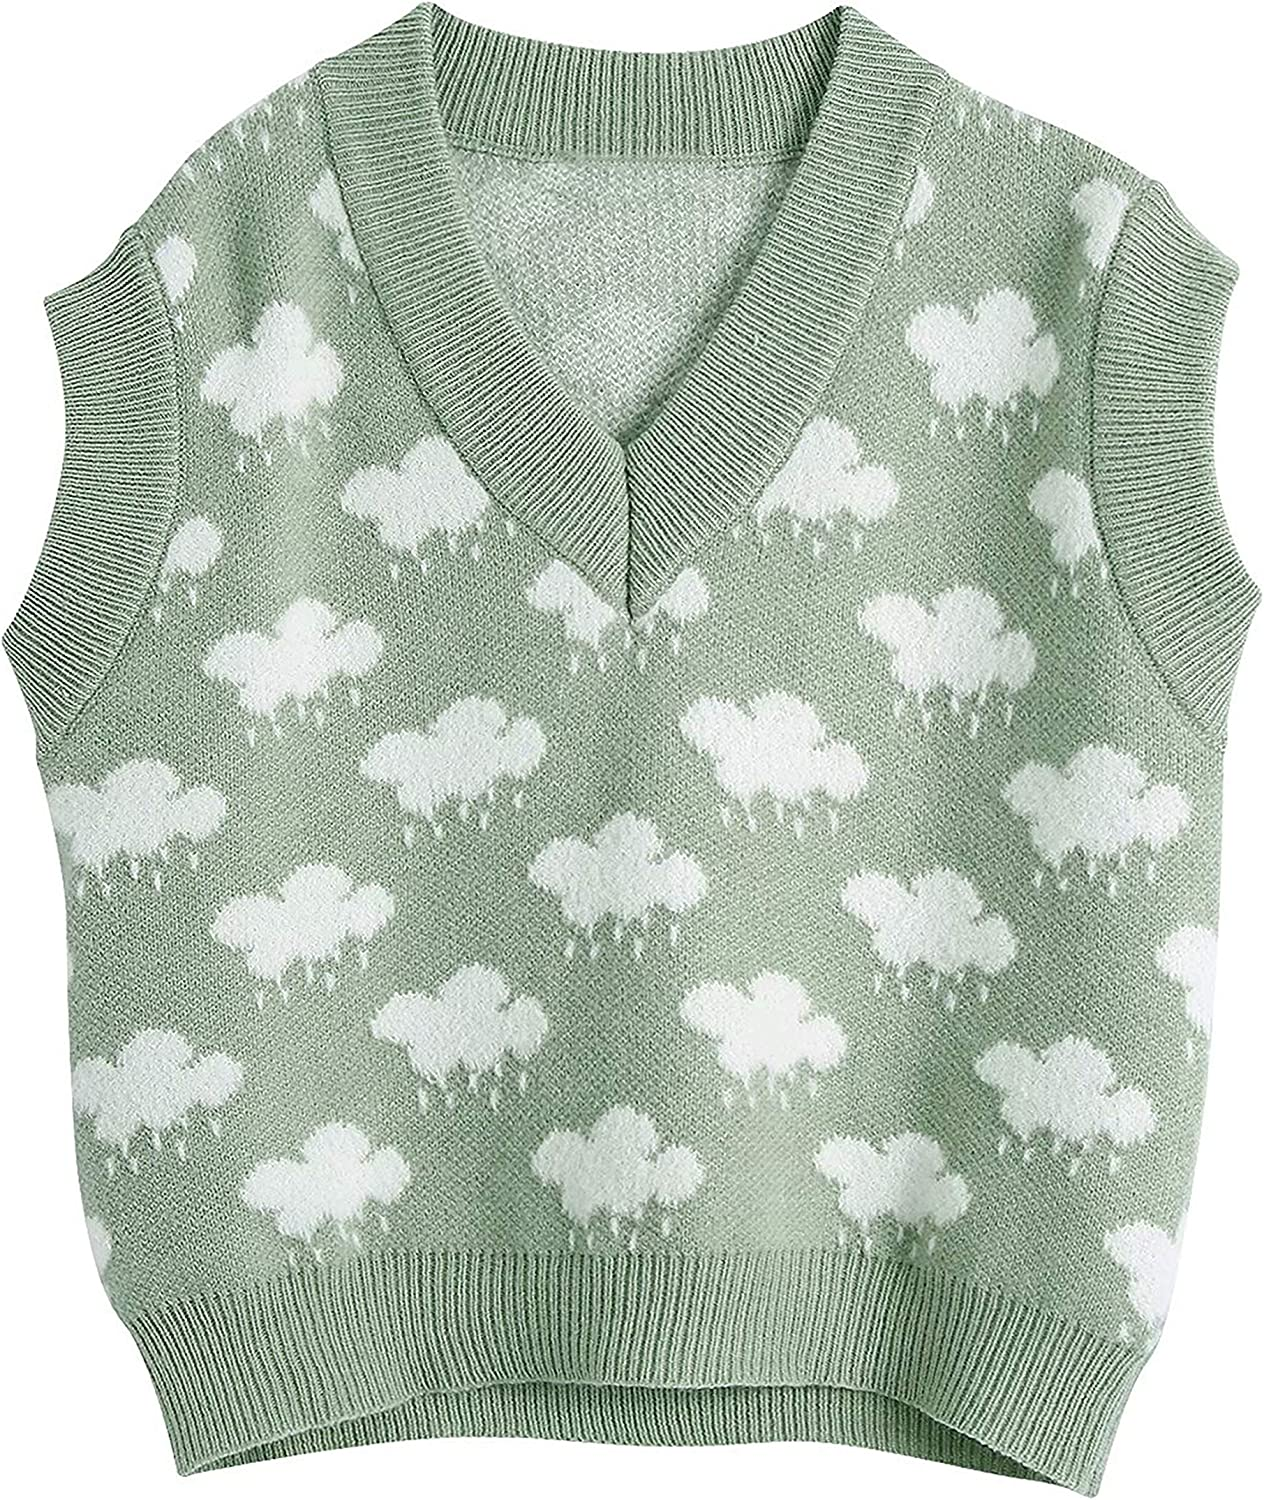 UANEO Womens Cloud Print Knit V Neck Sleeveless Pullover Sweater Vest